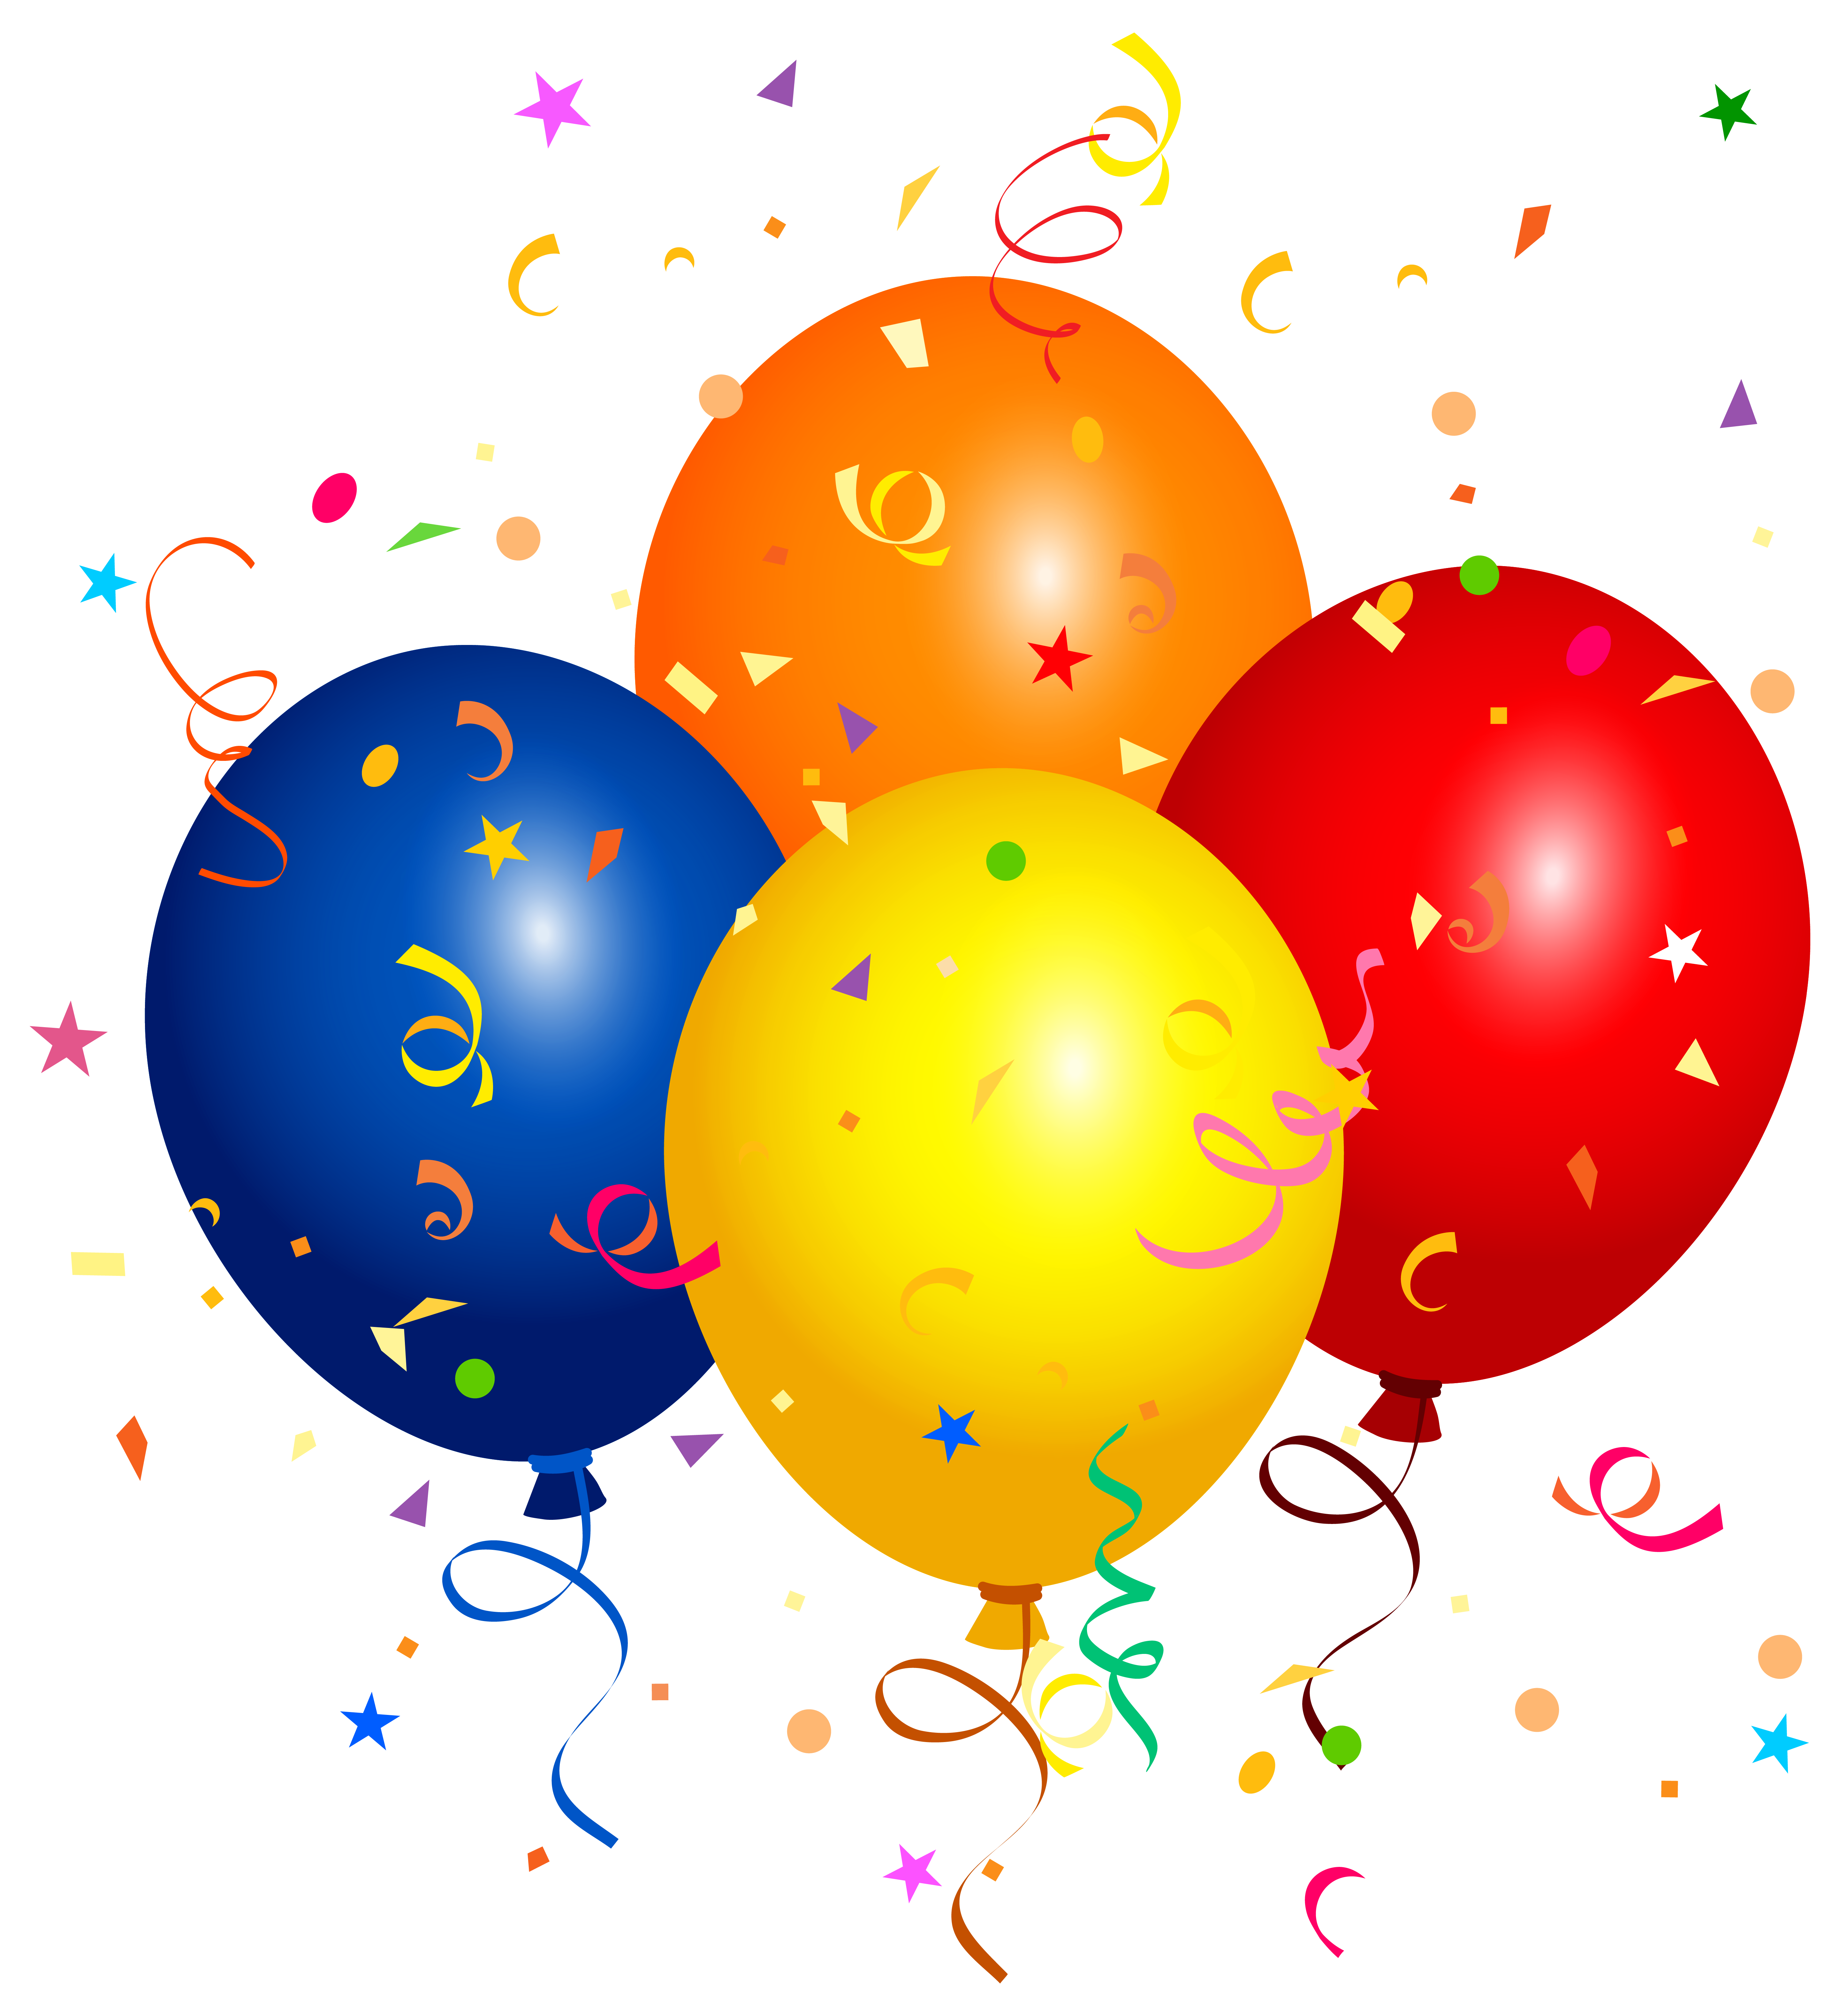 Balloon clipart png. Confetti and balloons image